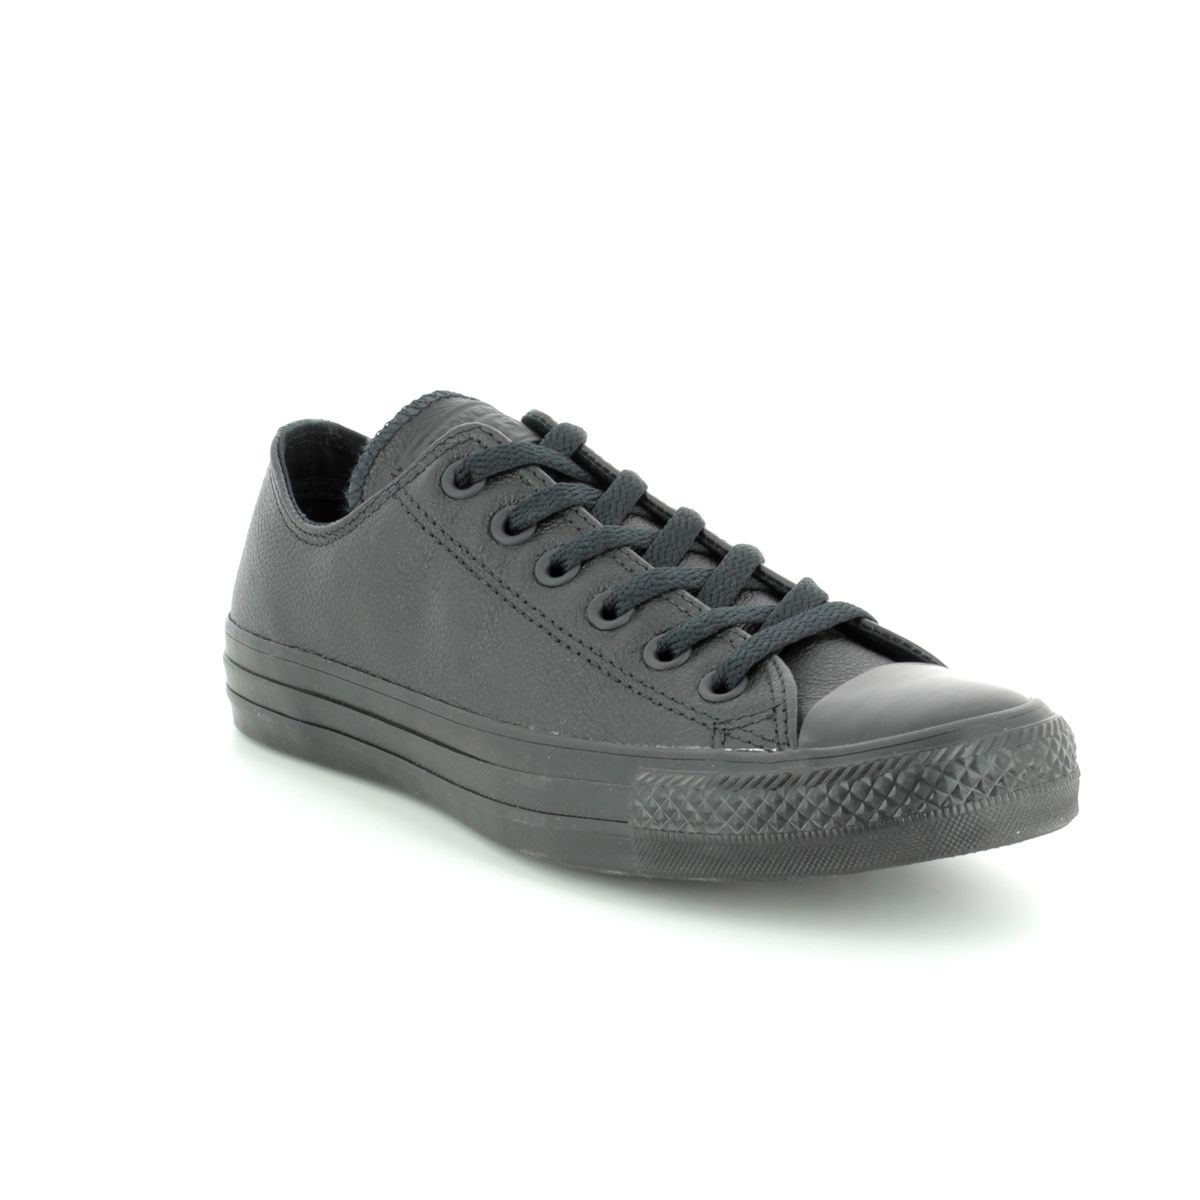 ec22869b6bf Converse Trainers - Black - 135253C Chuck Taylor All Star OX MONO